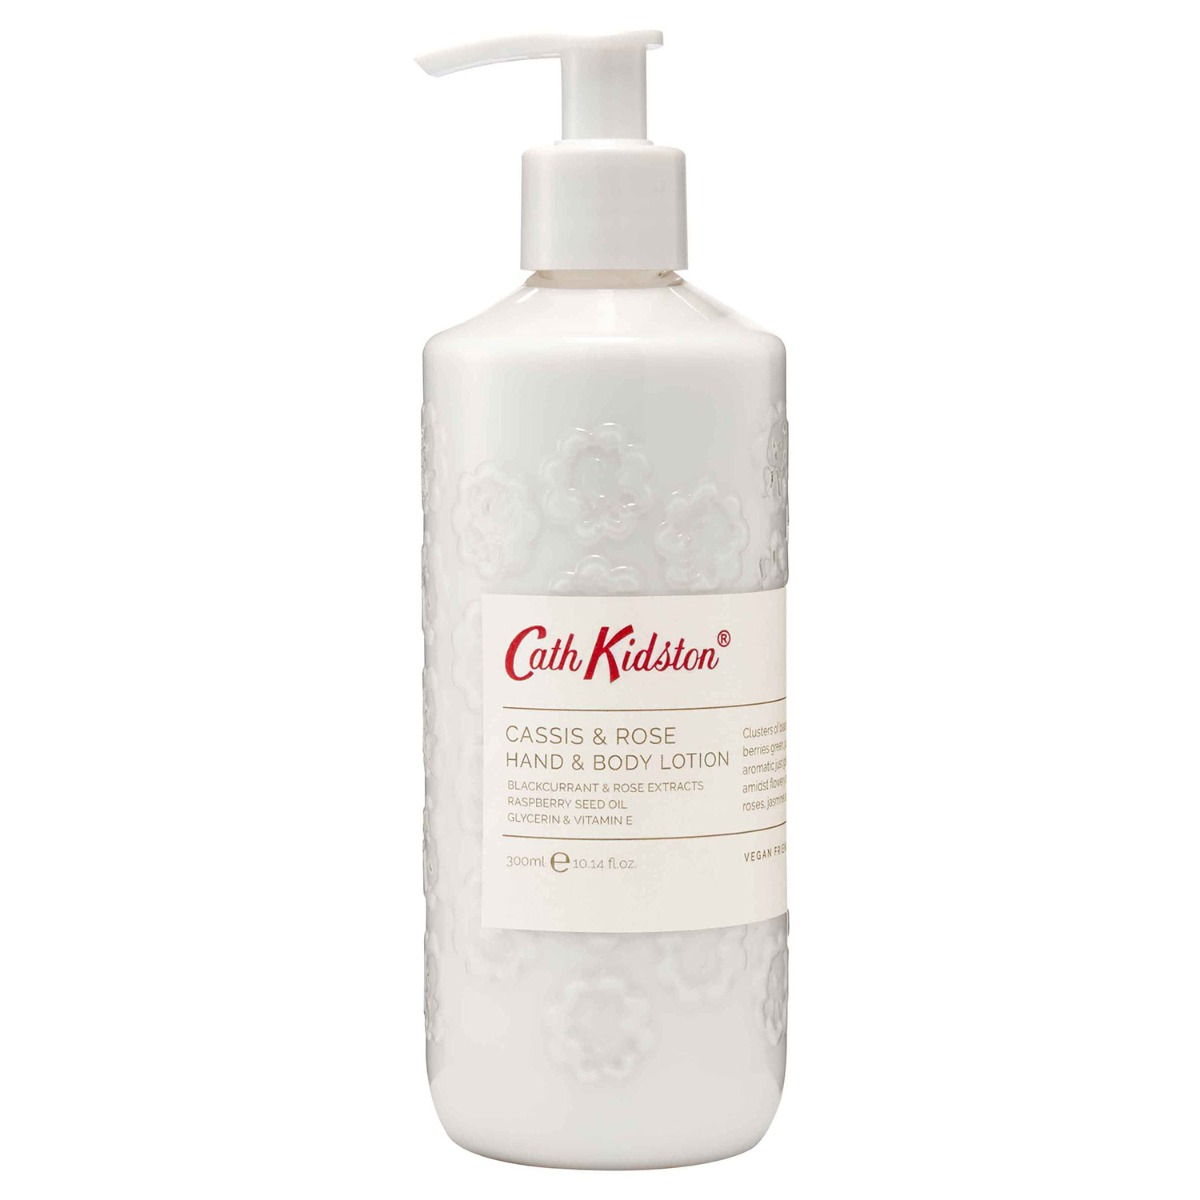 Cath Kidston Cassis & Rose Hand & Body Lotion